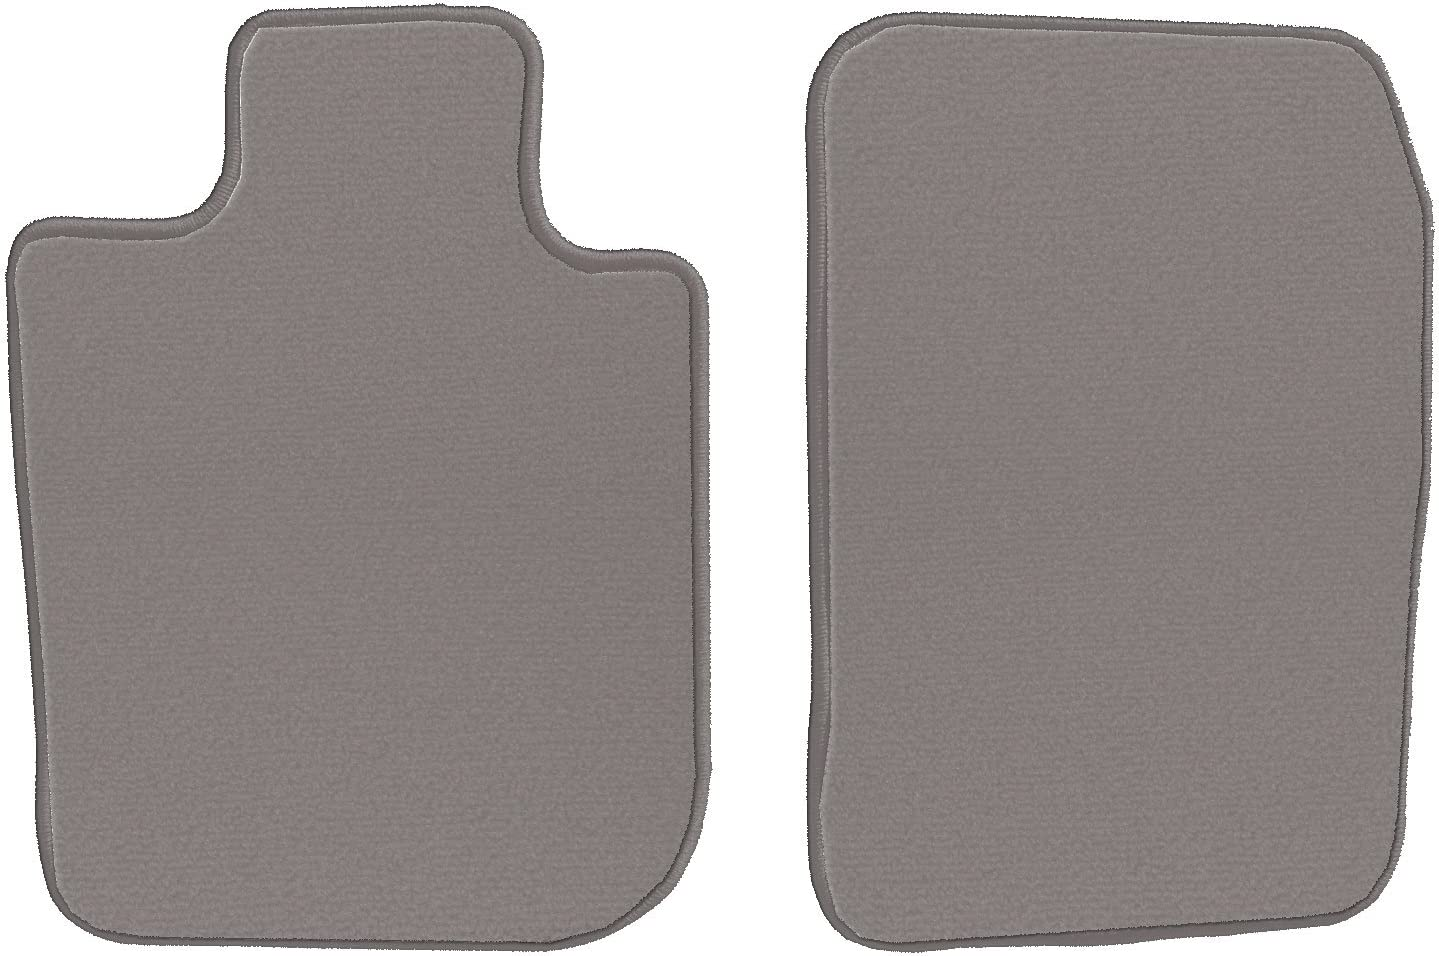 1996 1995 1998 Grey Loop Driver /& Passenger Floor Mats GGBAILEY Lincoln Mark VIII 1993 1994 1997